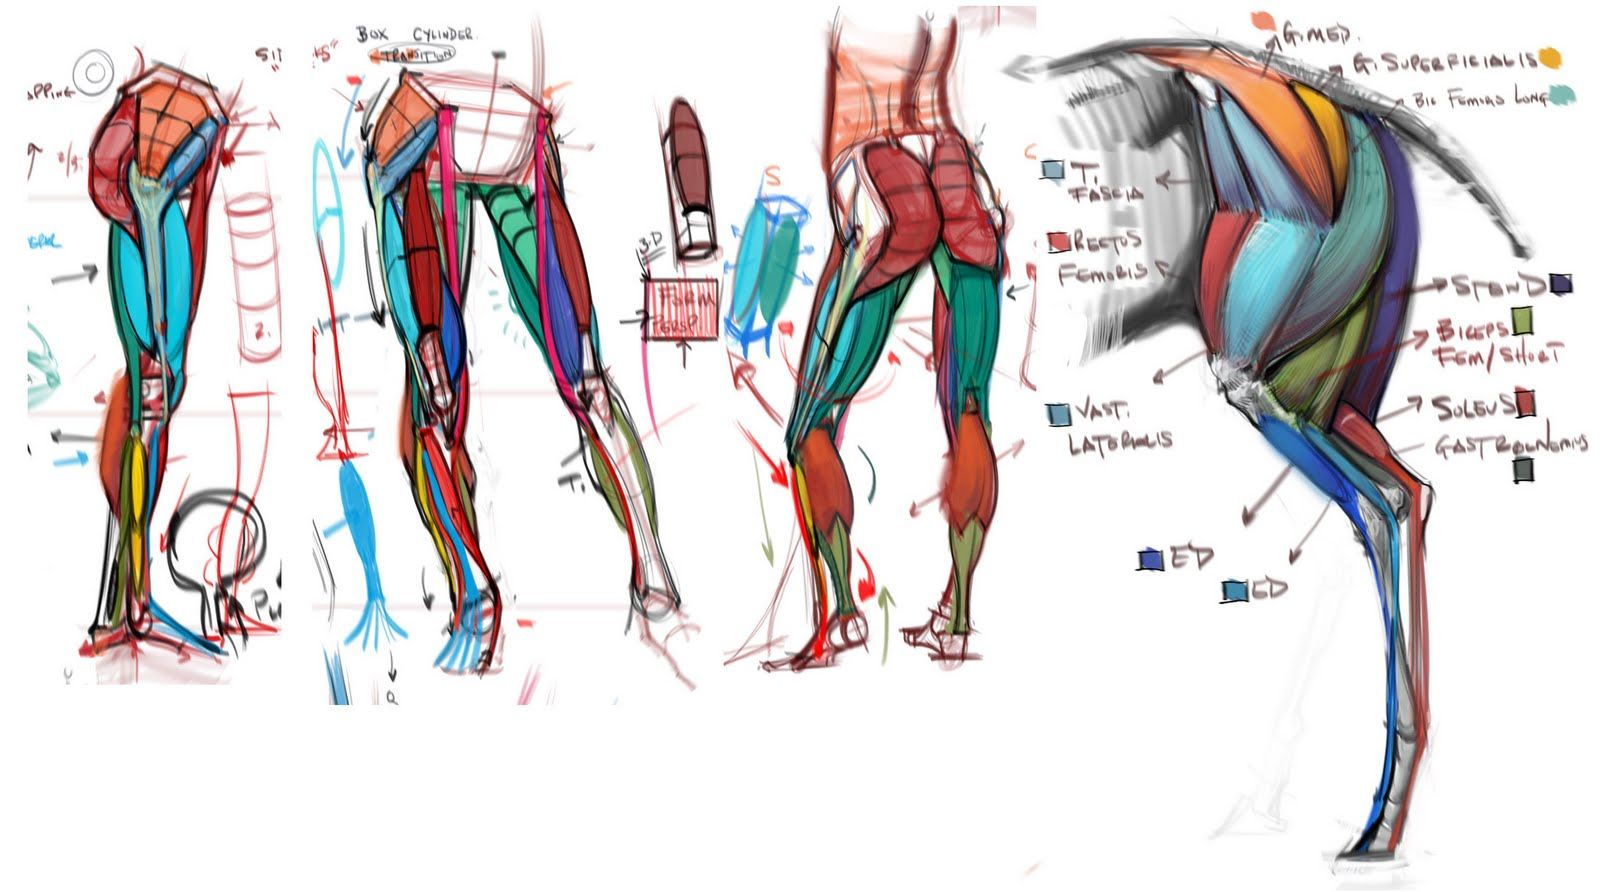 evolution of human legs essay The essay reprinted here appeared first in natural history age often turns fire   the characteristic changes of form during human growth have inspired a  substantial biological literature  through growth as legs and feet overtake the  front end.